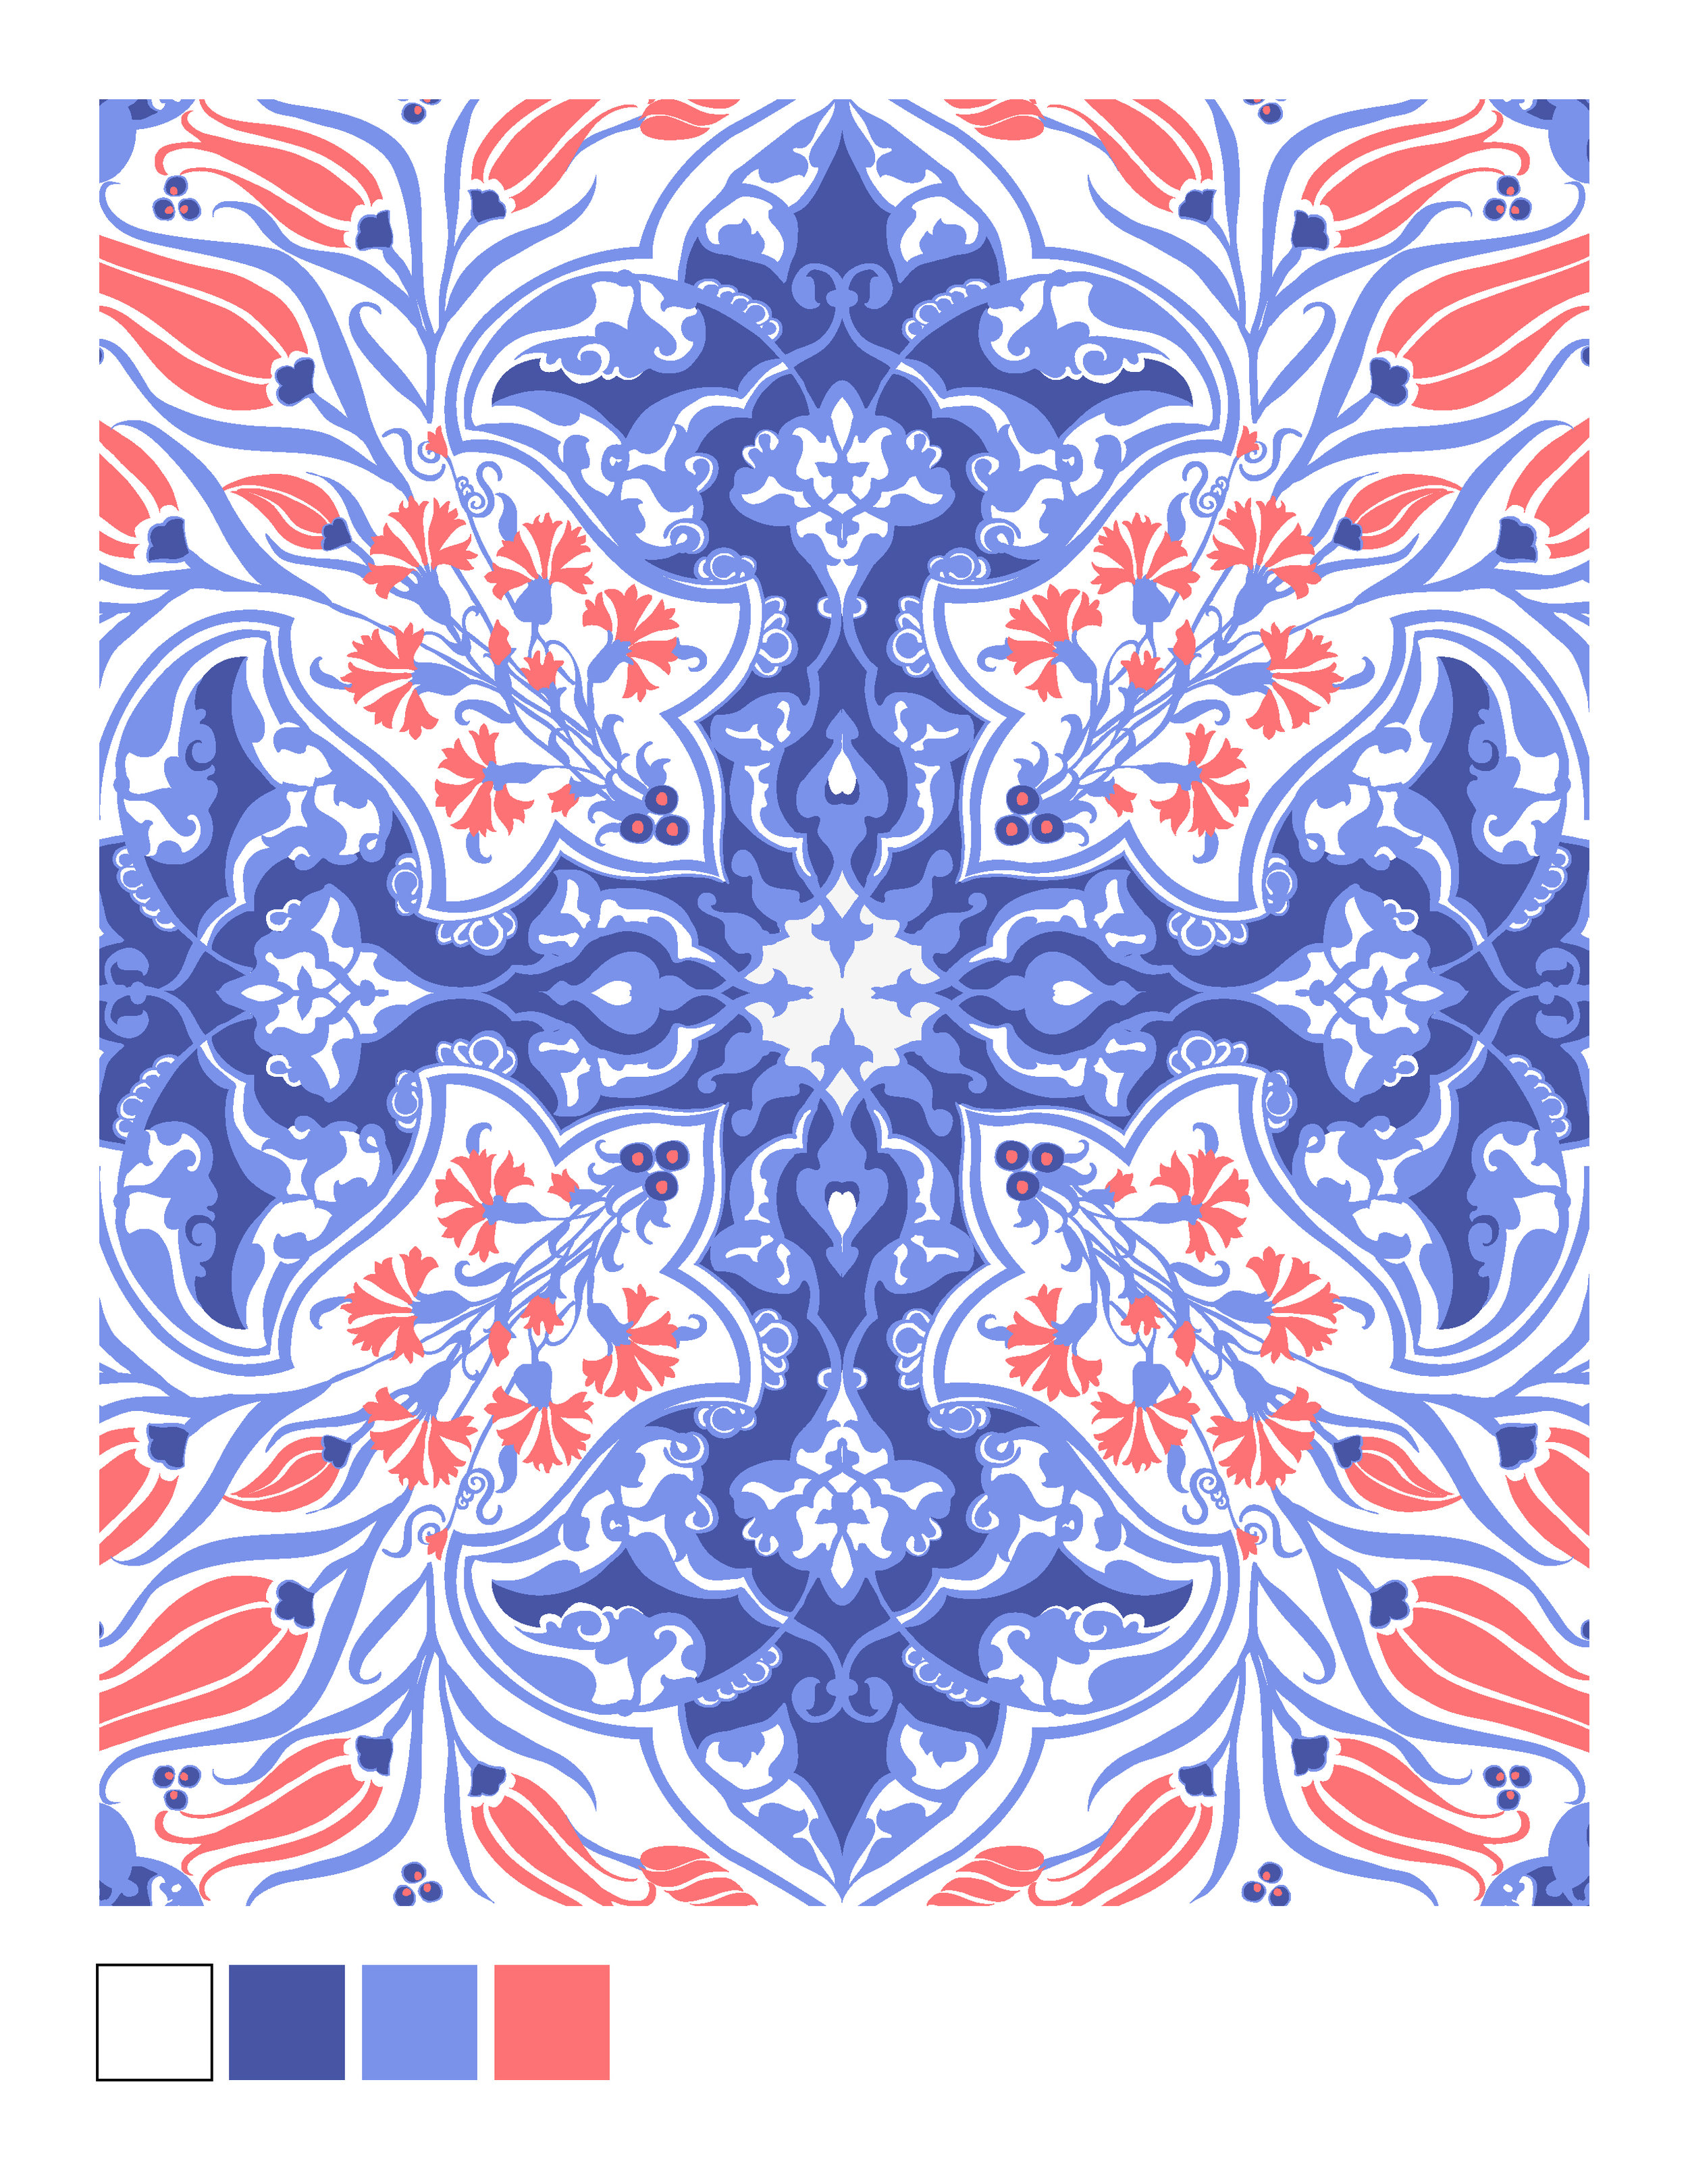 This print was inspired by turkish isNIK tiles. these iconic tiles were decorated with turquoise, cobalt blue, and red tulip patterns and vine leaves among other motifs.